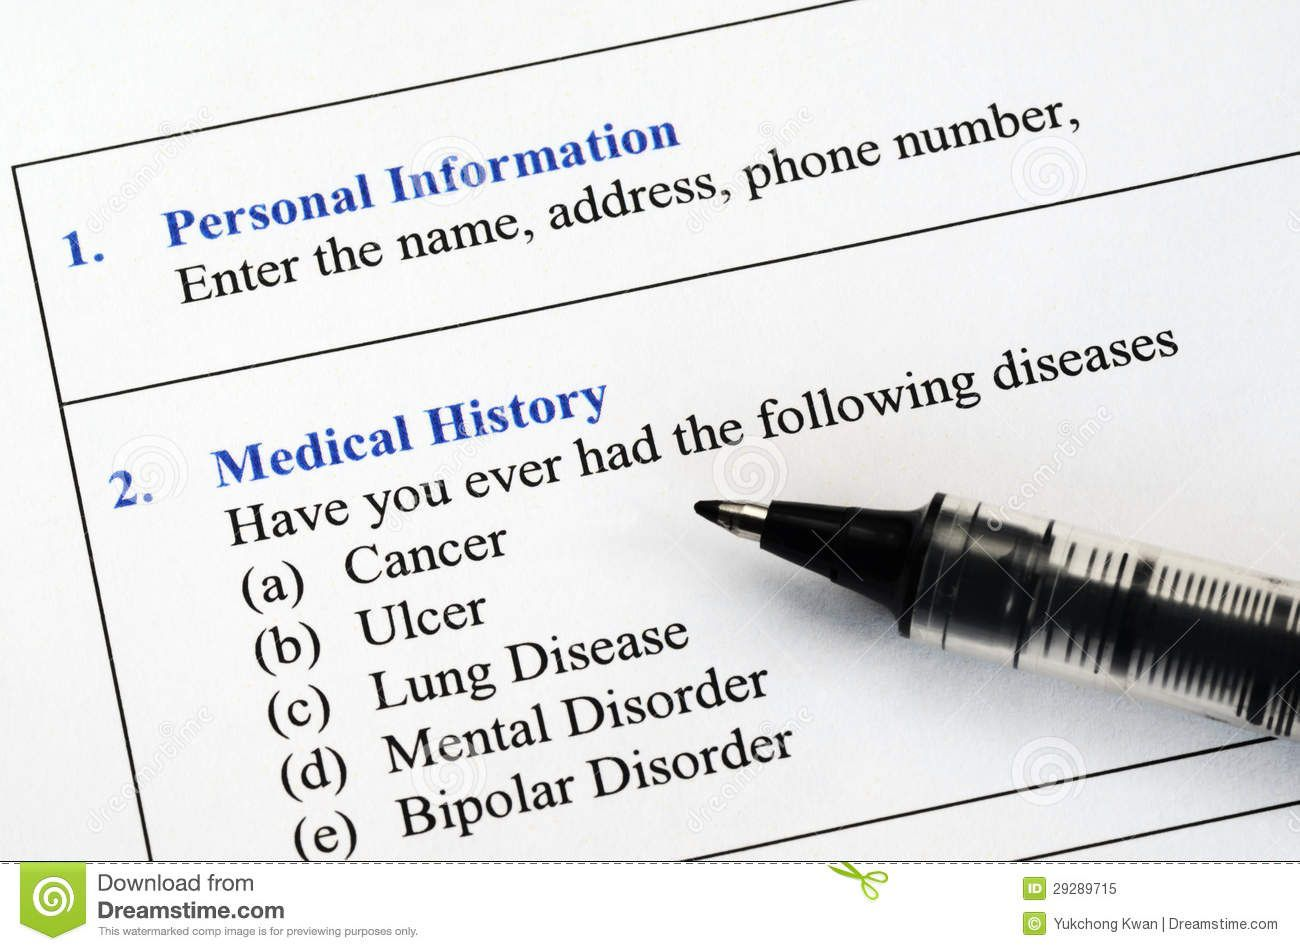 005 Unique Personal Medical History Template Download High Definition Full